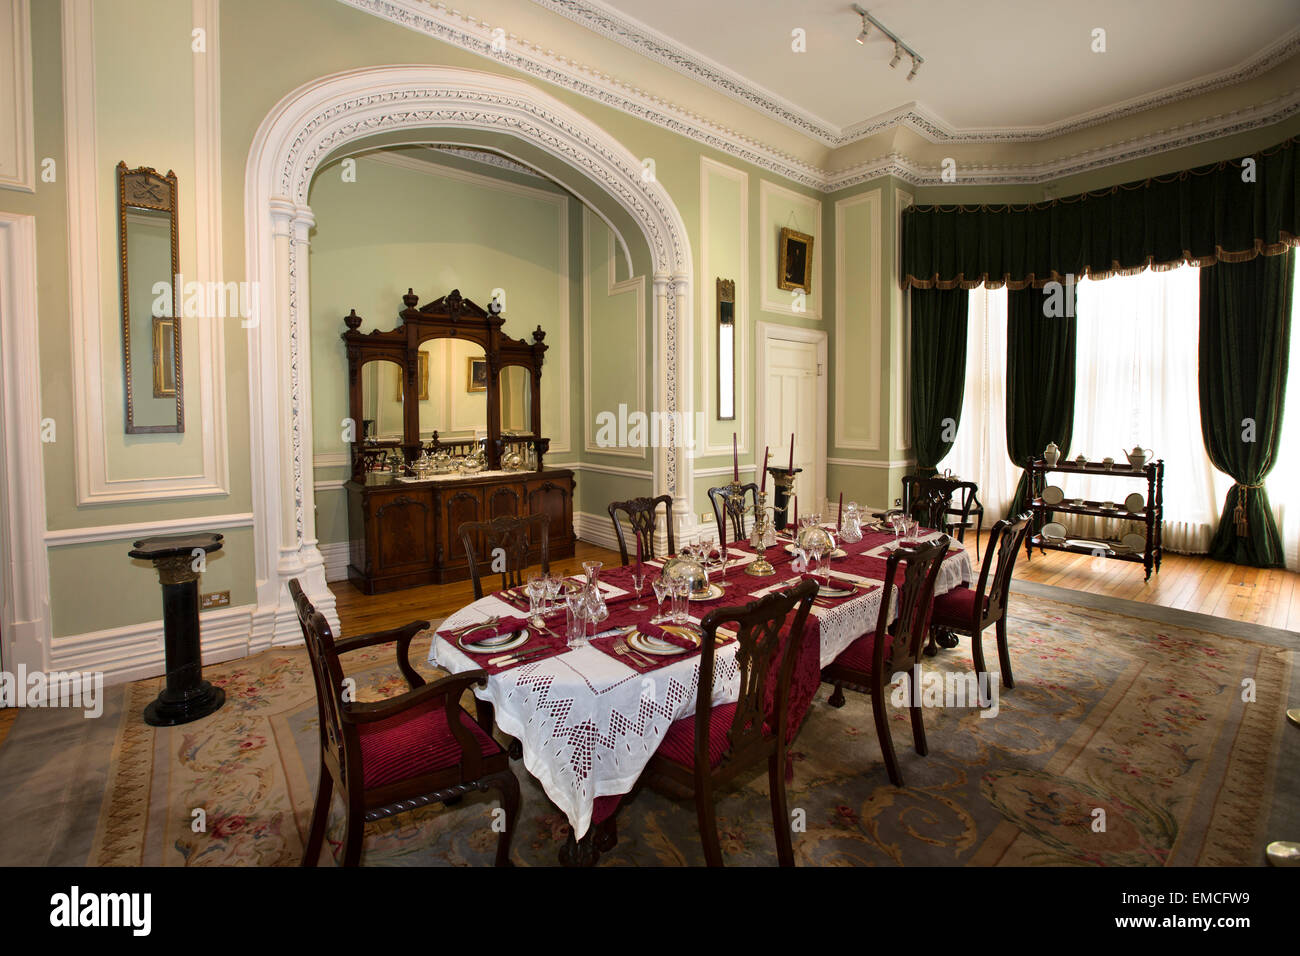 Ireland Co Galway Connemara Kylemore Abbey Dining Room With Table Laid